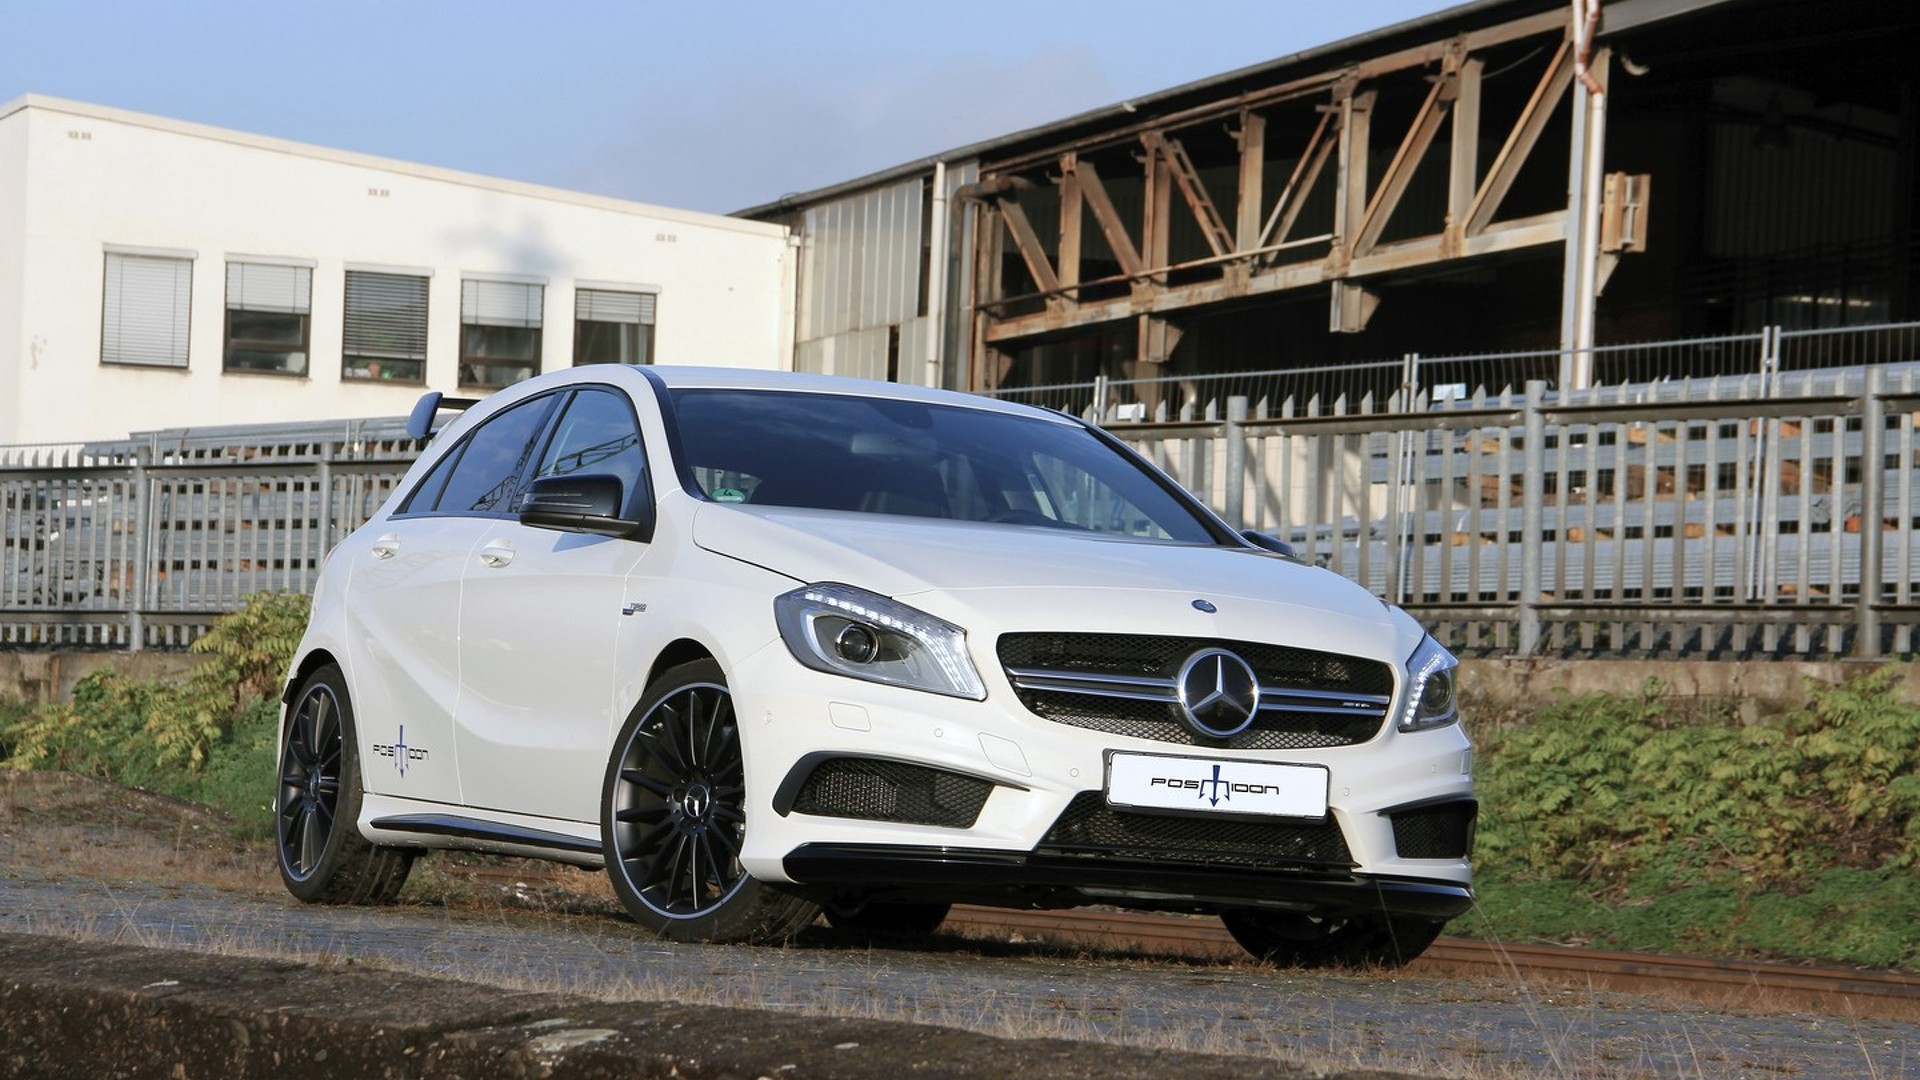 Tuner extracts 485 hp from Mercedes A45 AMG